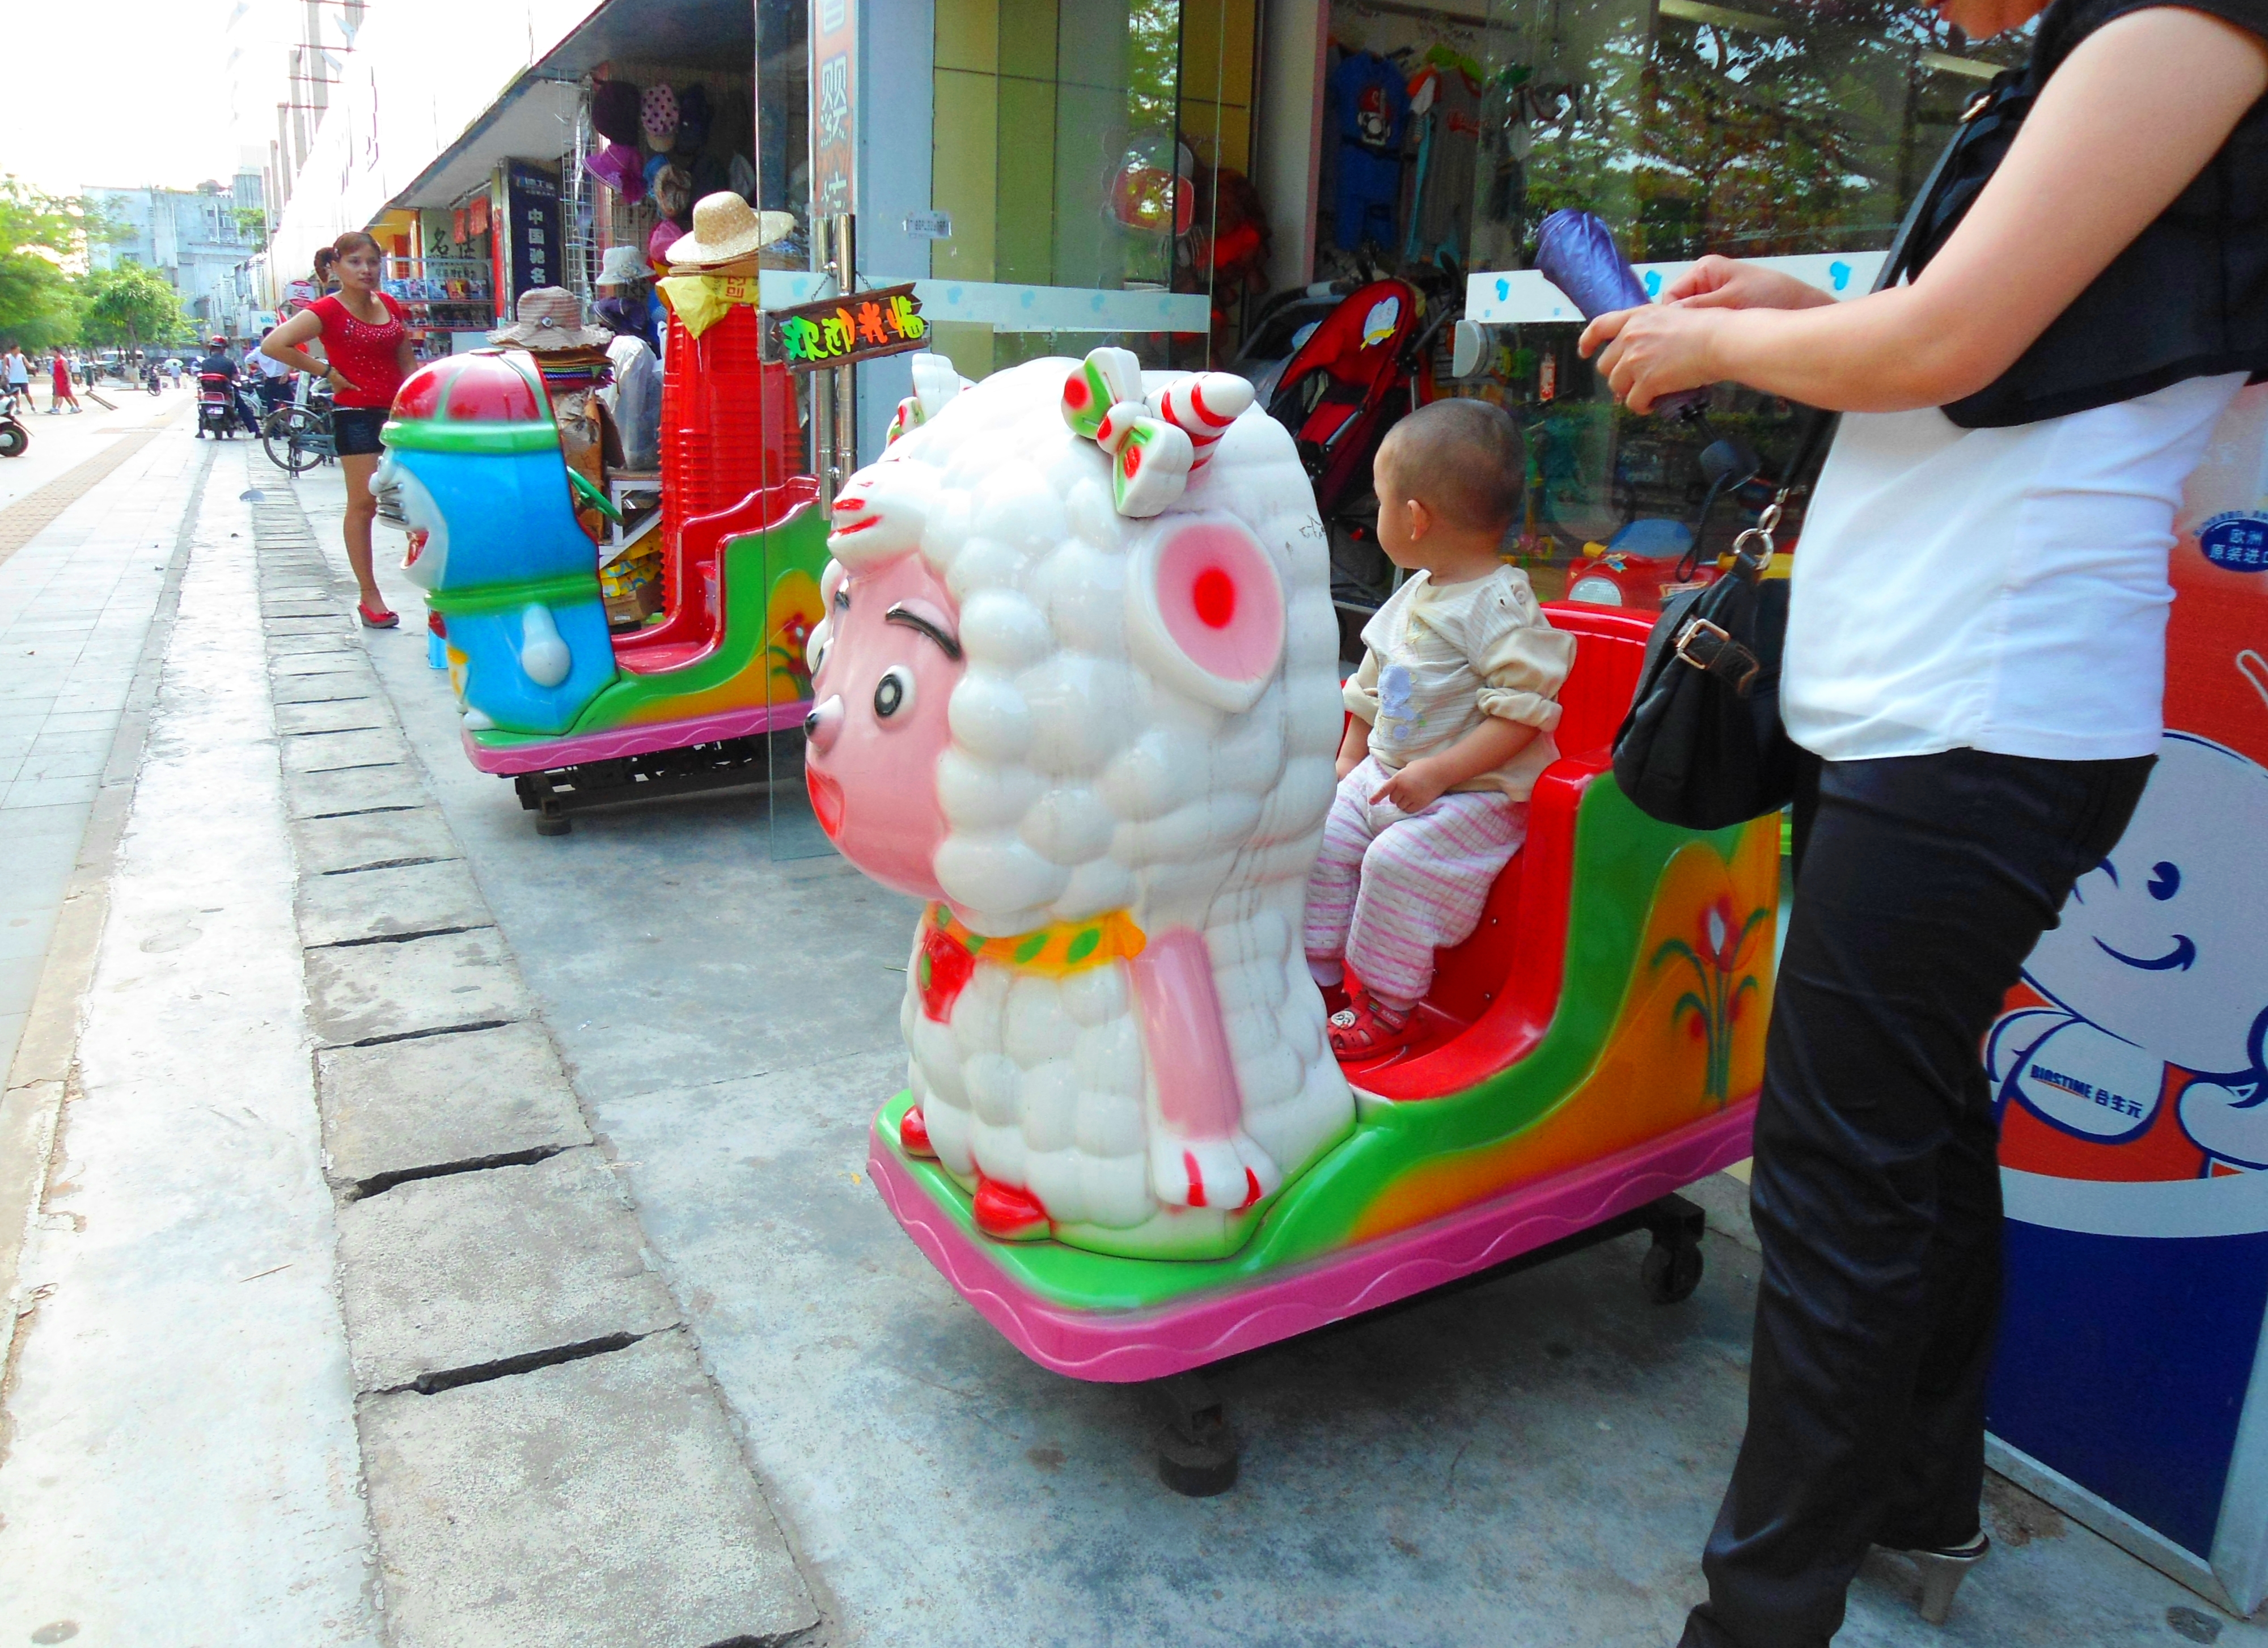 File:Kiddie ride - 05.jpg - Wikimedia Commonskiddie